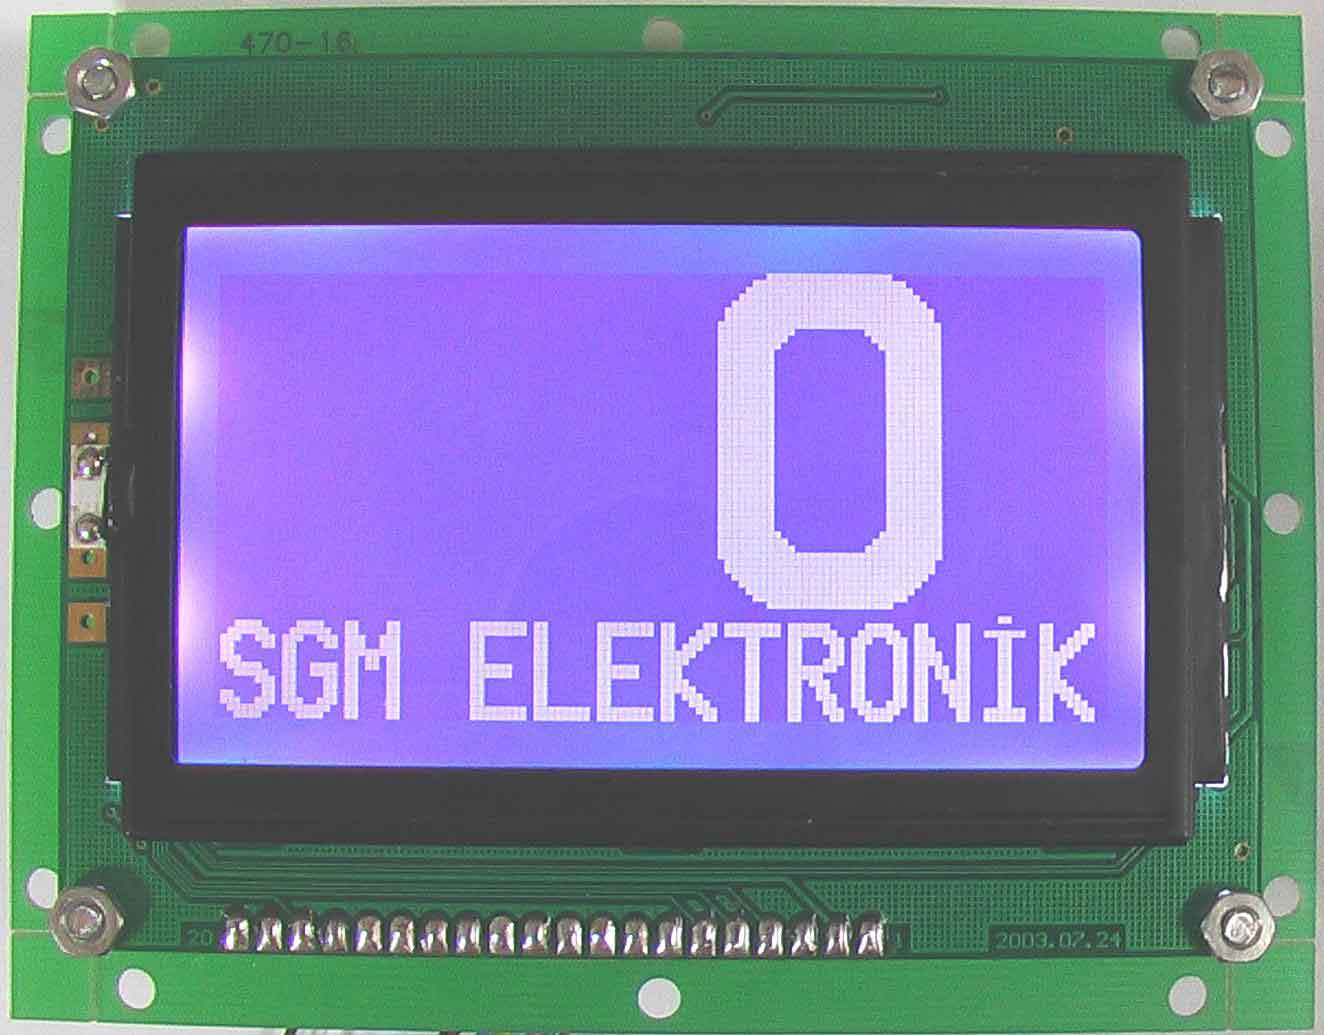 Graphic LCD Indicator ( Graphic LCD Indicator)